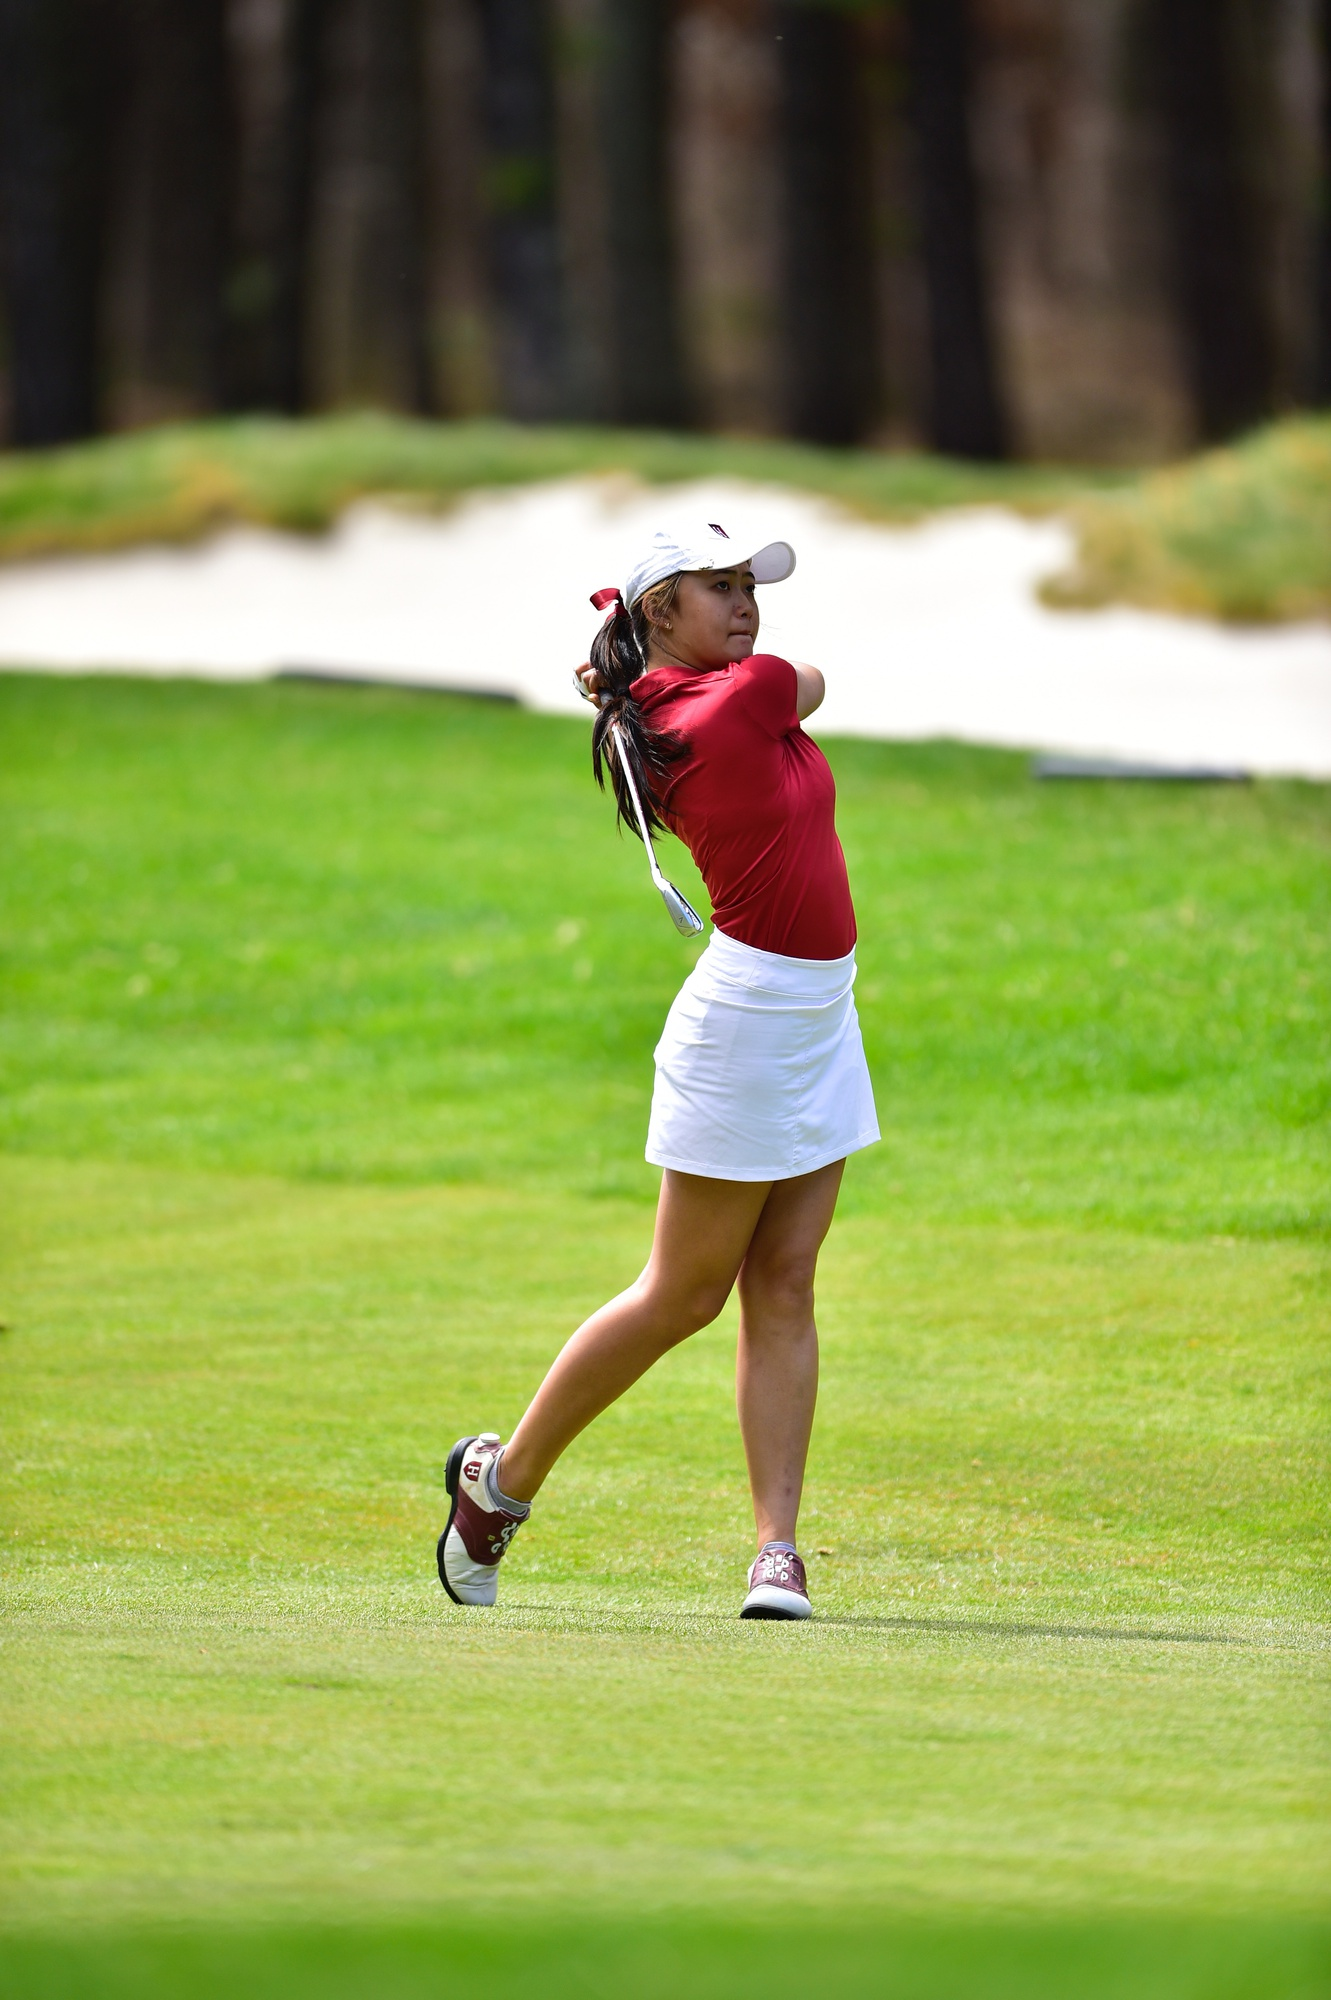 Junior Michelle Xie finished four strokes ahead of the next competitor to become the Ivy League Individual Champion.